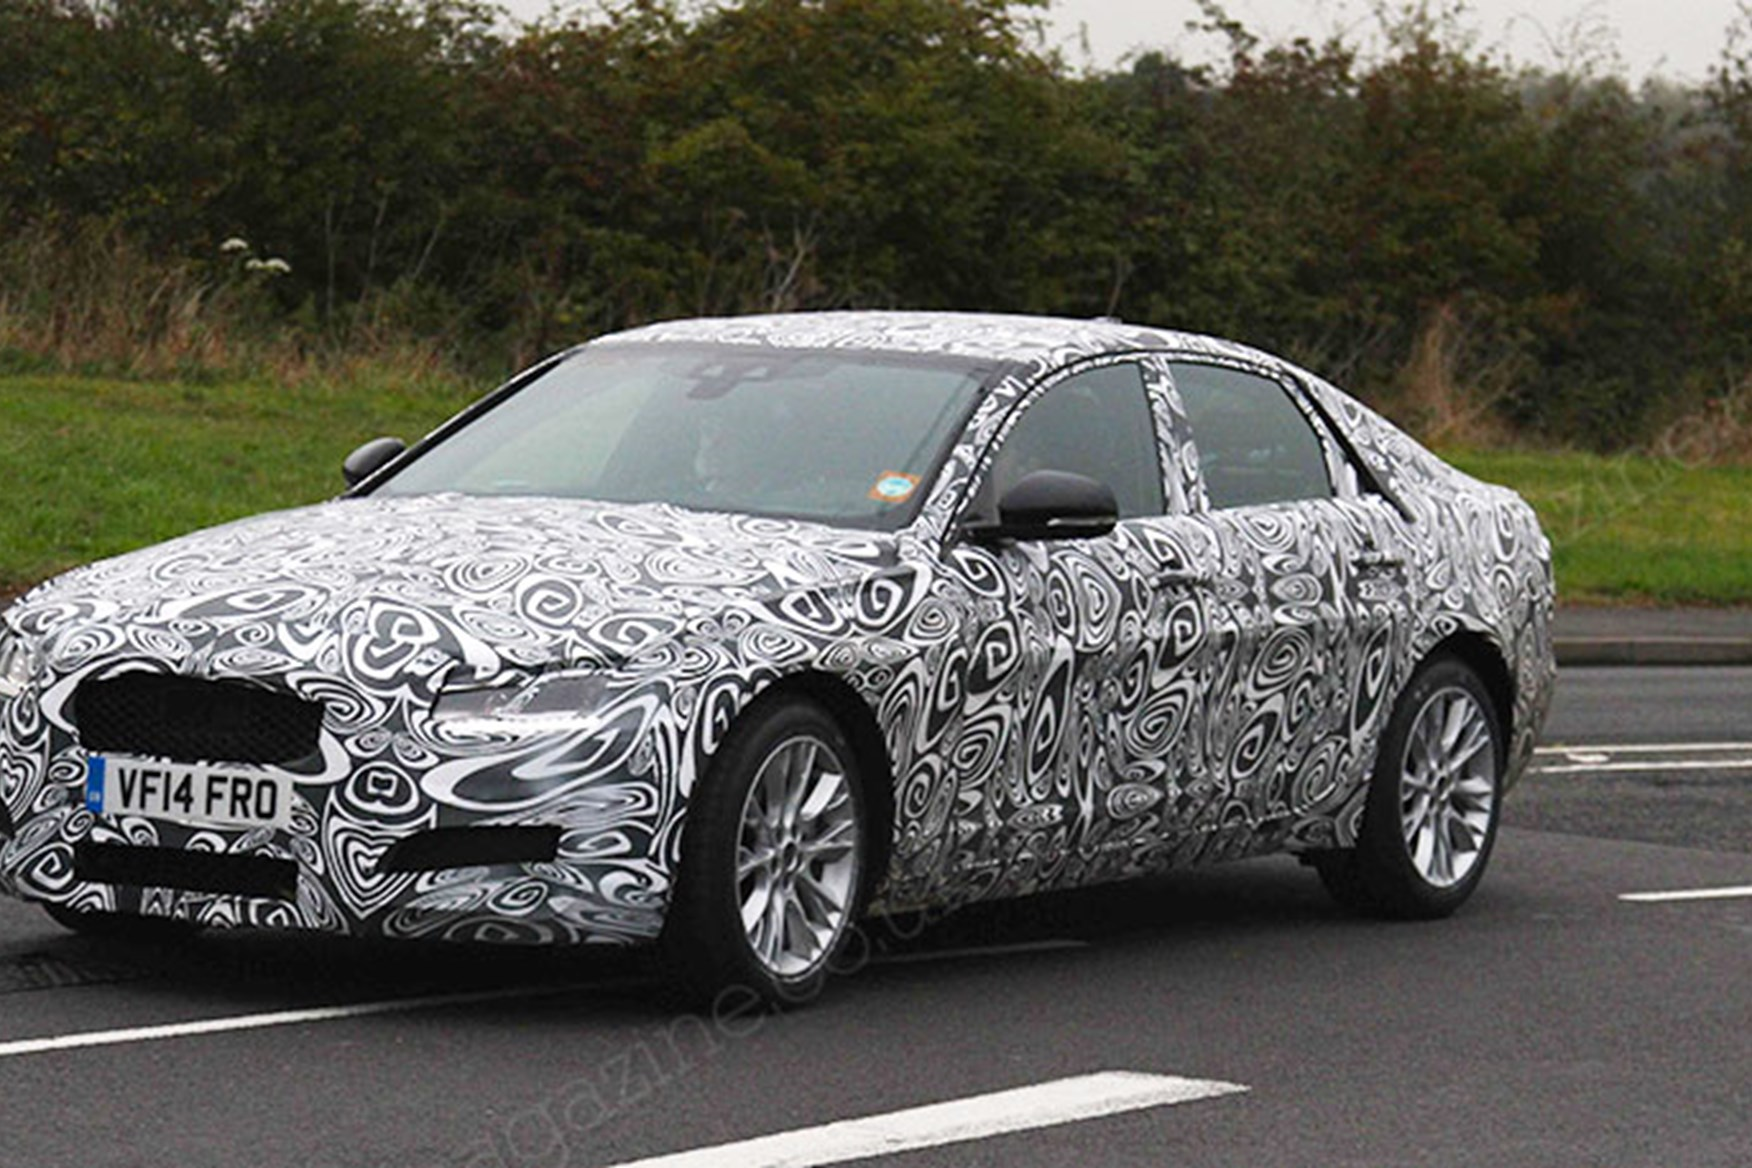 Exceptional ... CAR Magazineu0027s Jaguar XF Is Being Developed In The West Midlands, ... Pictures